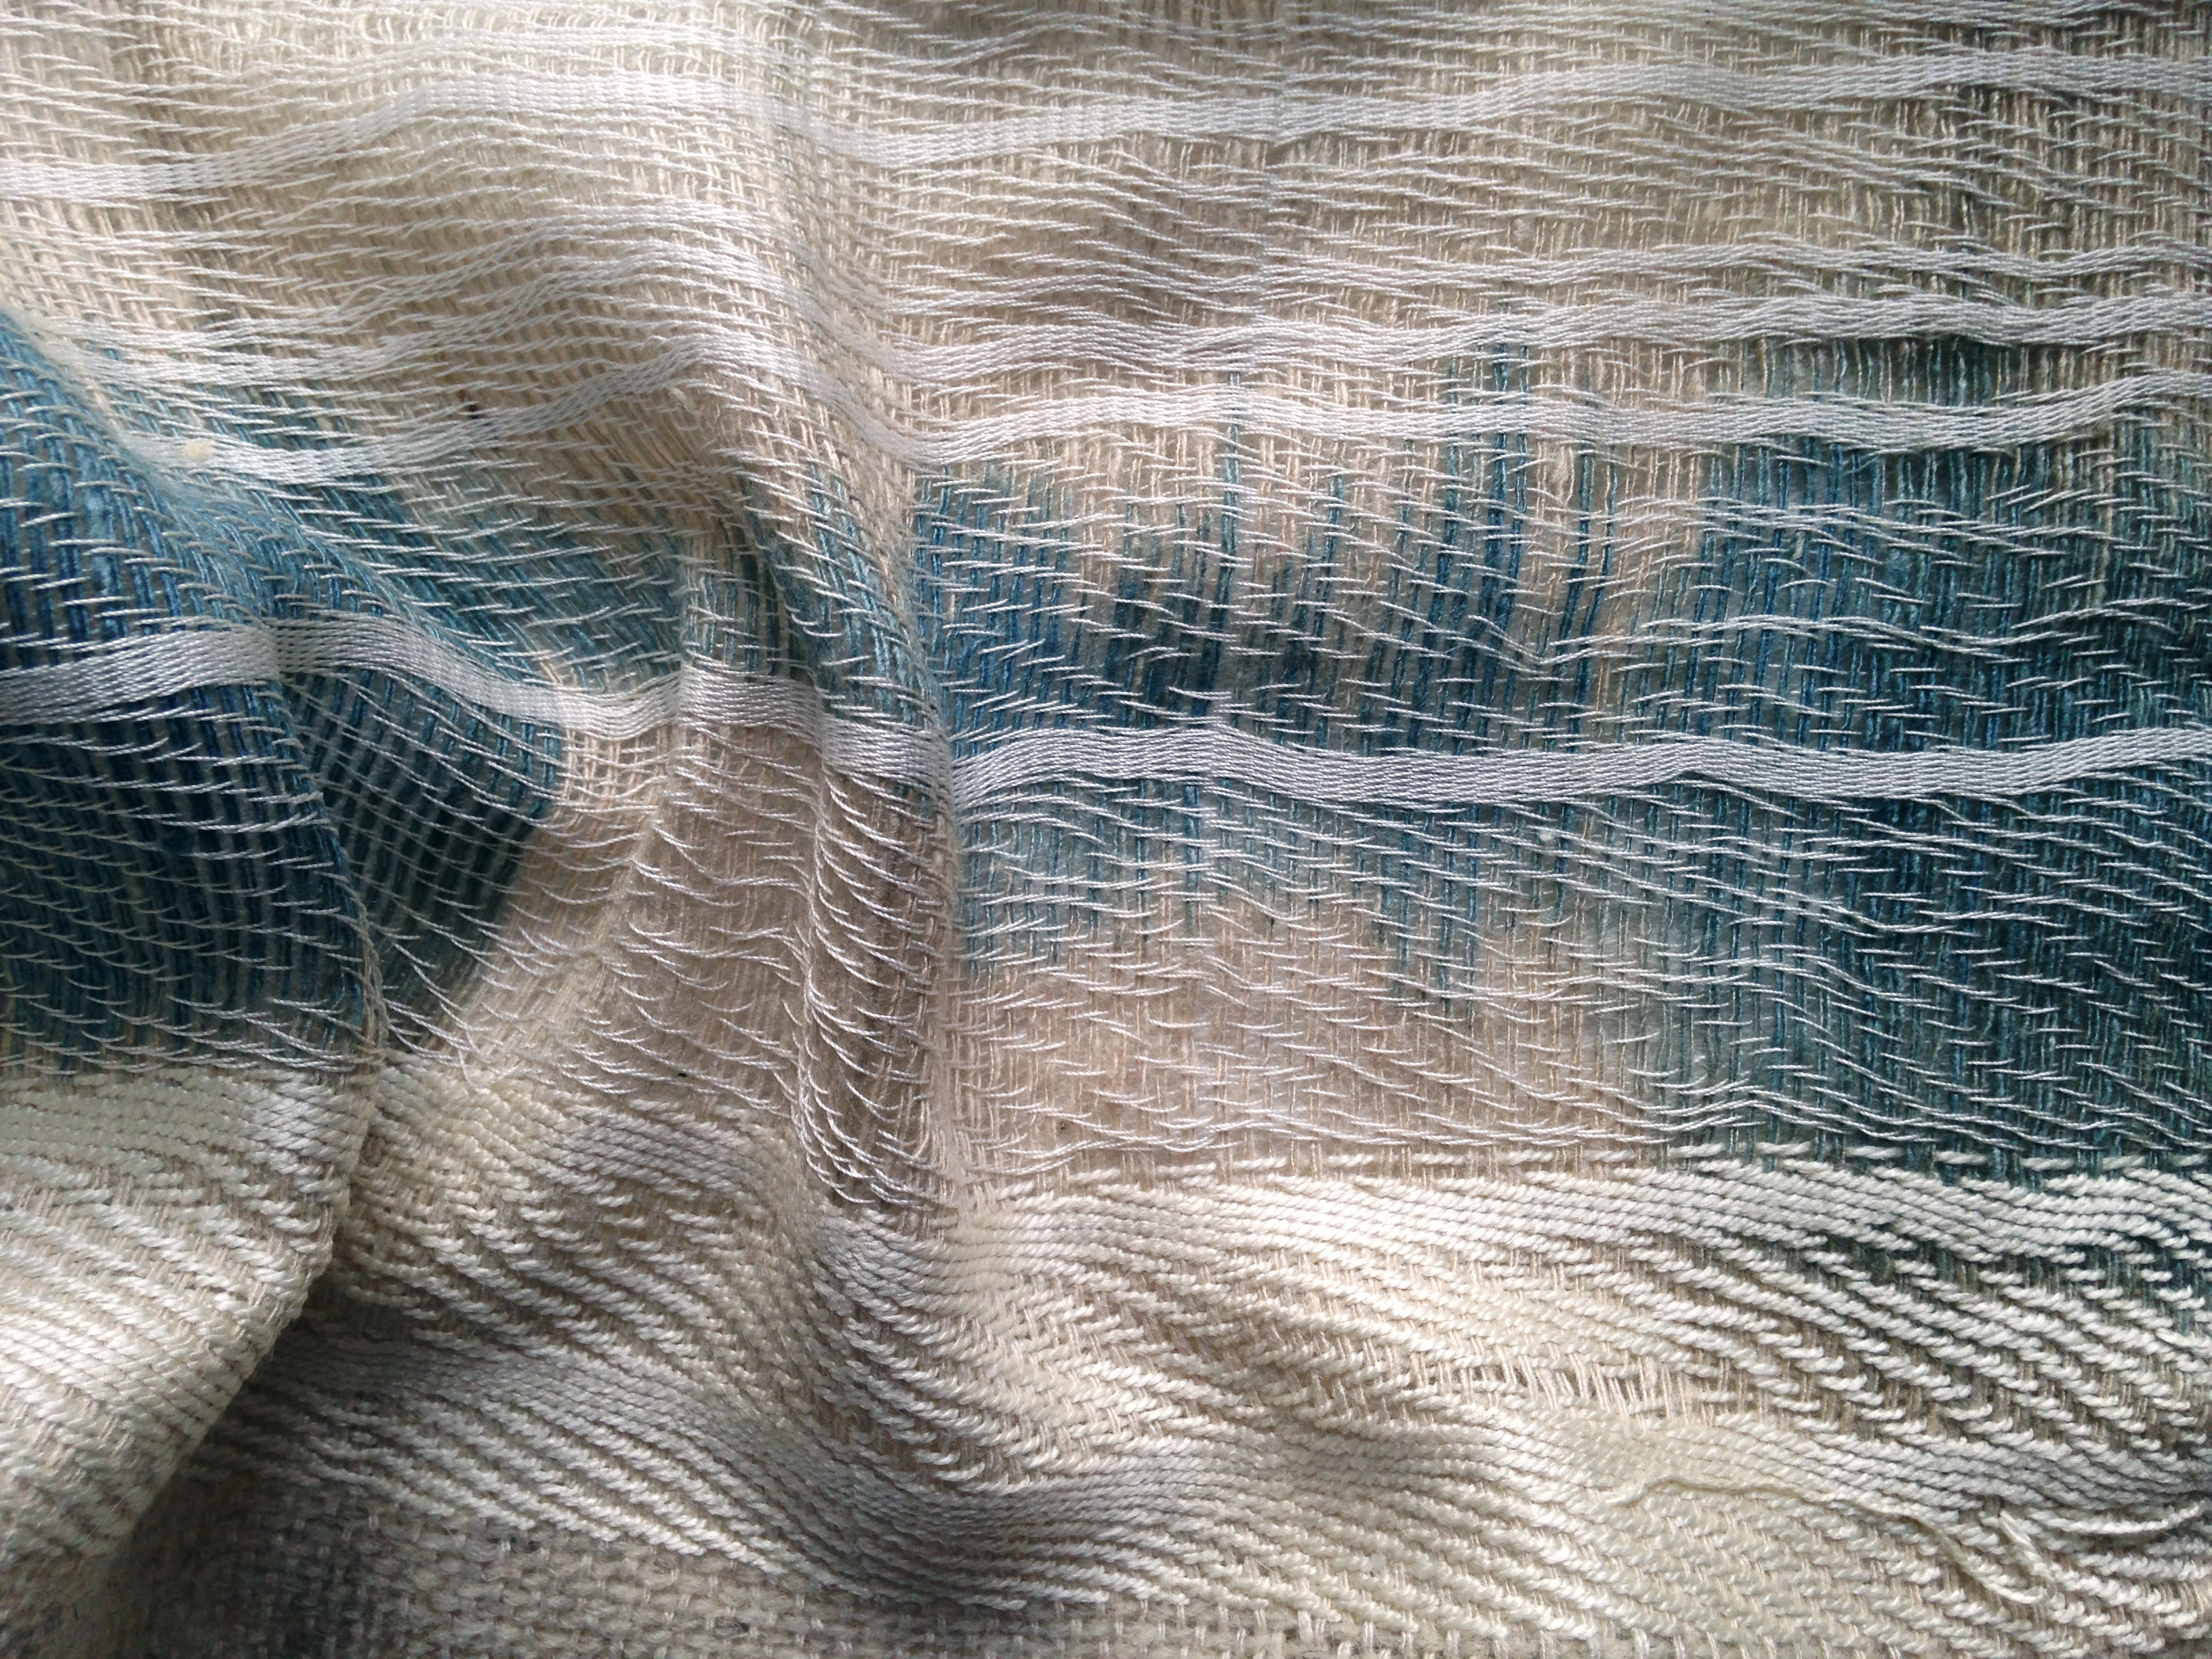 loxiale weaving eco fashion sustainable luxury silk linen indigo hand made in france